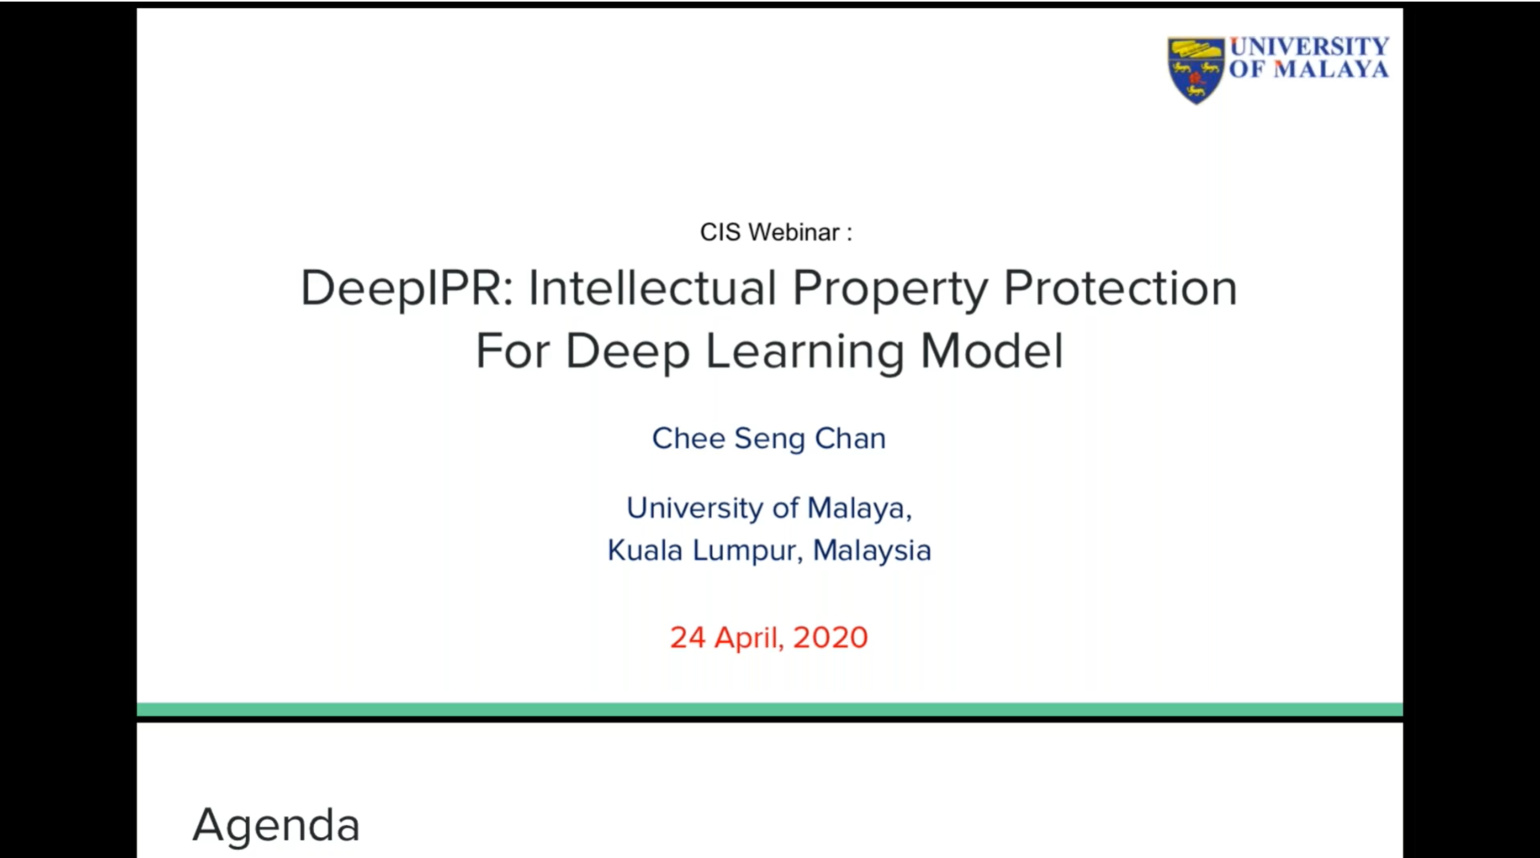 Prof. Chee Seng Chan - Intellectual Property Protection for Deep Learning Model